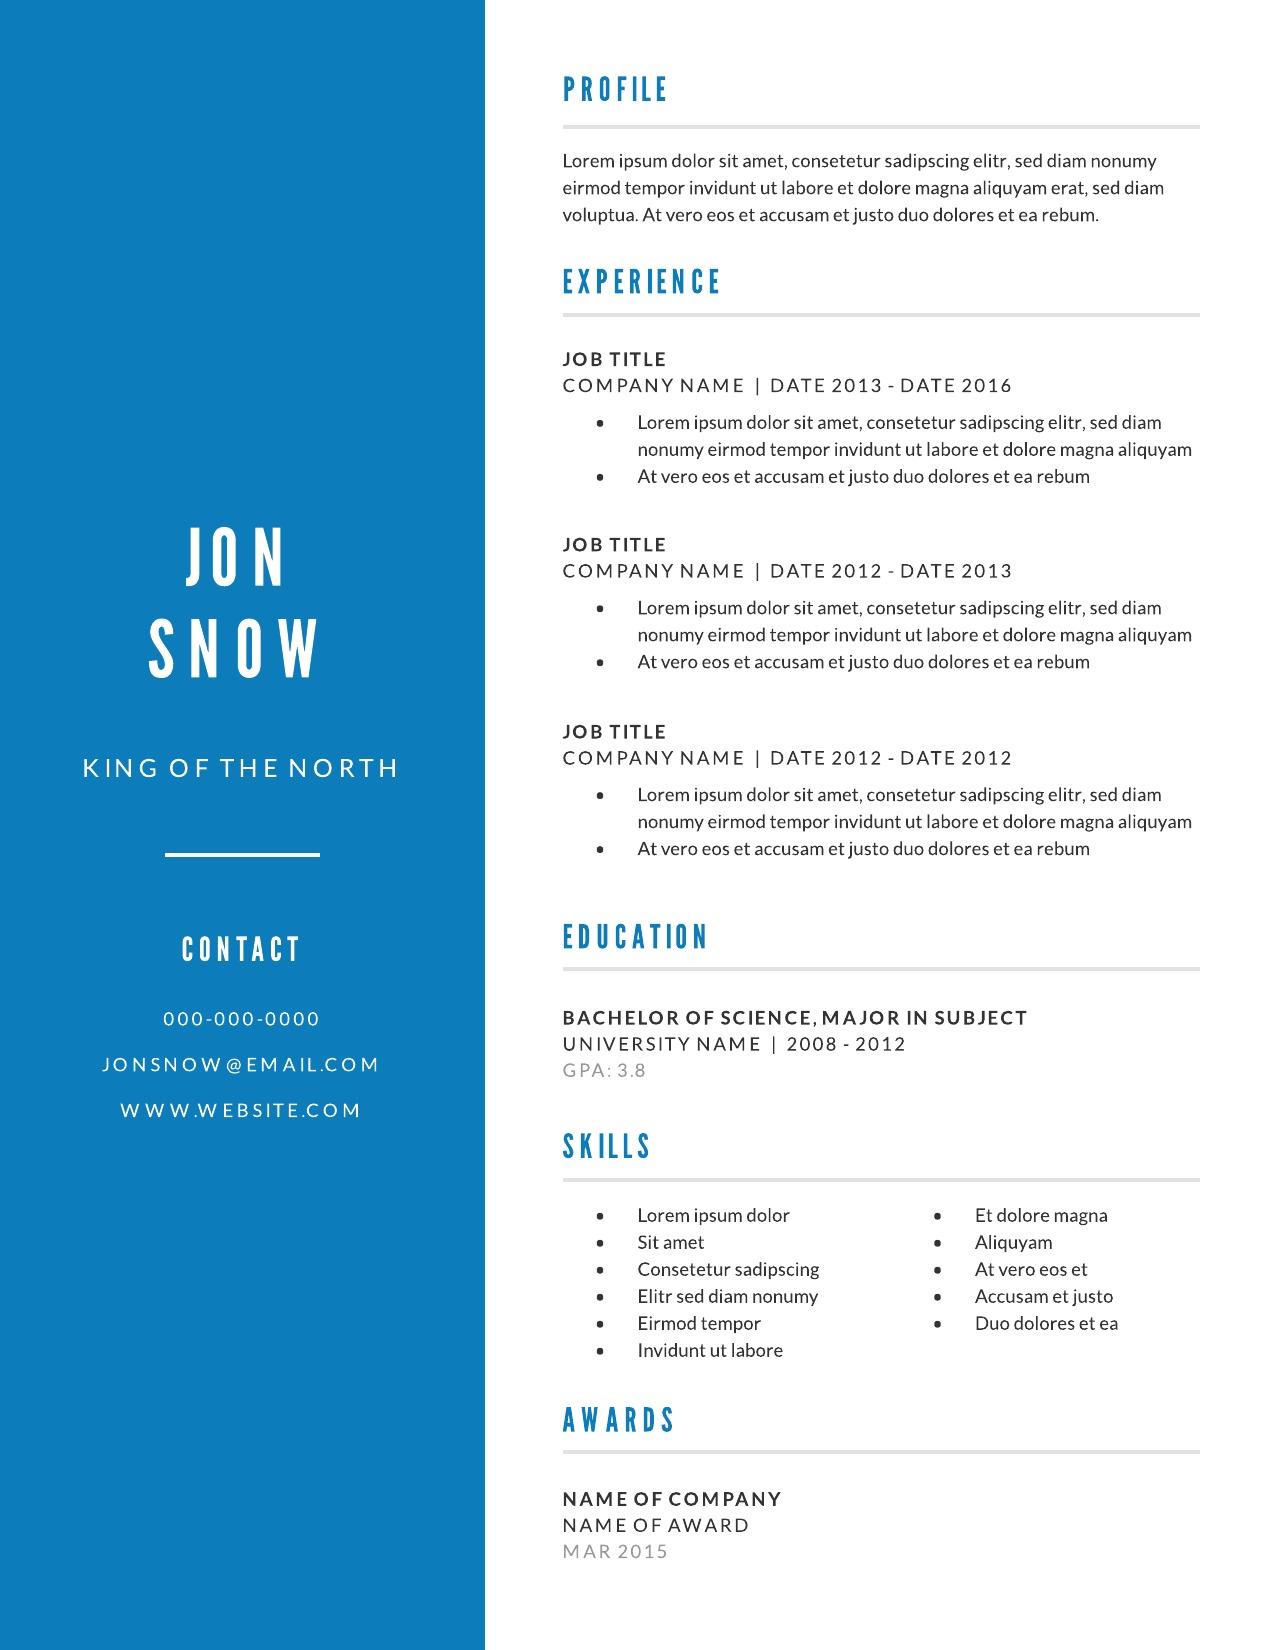 Resume examples & writing tips